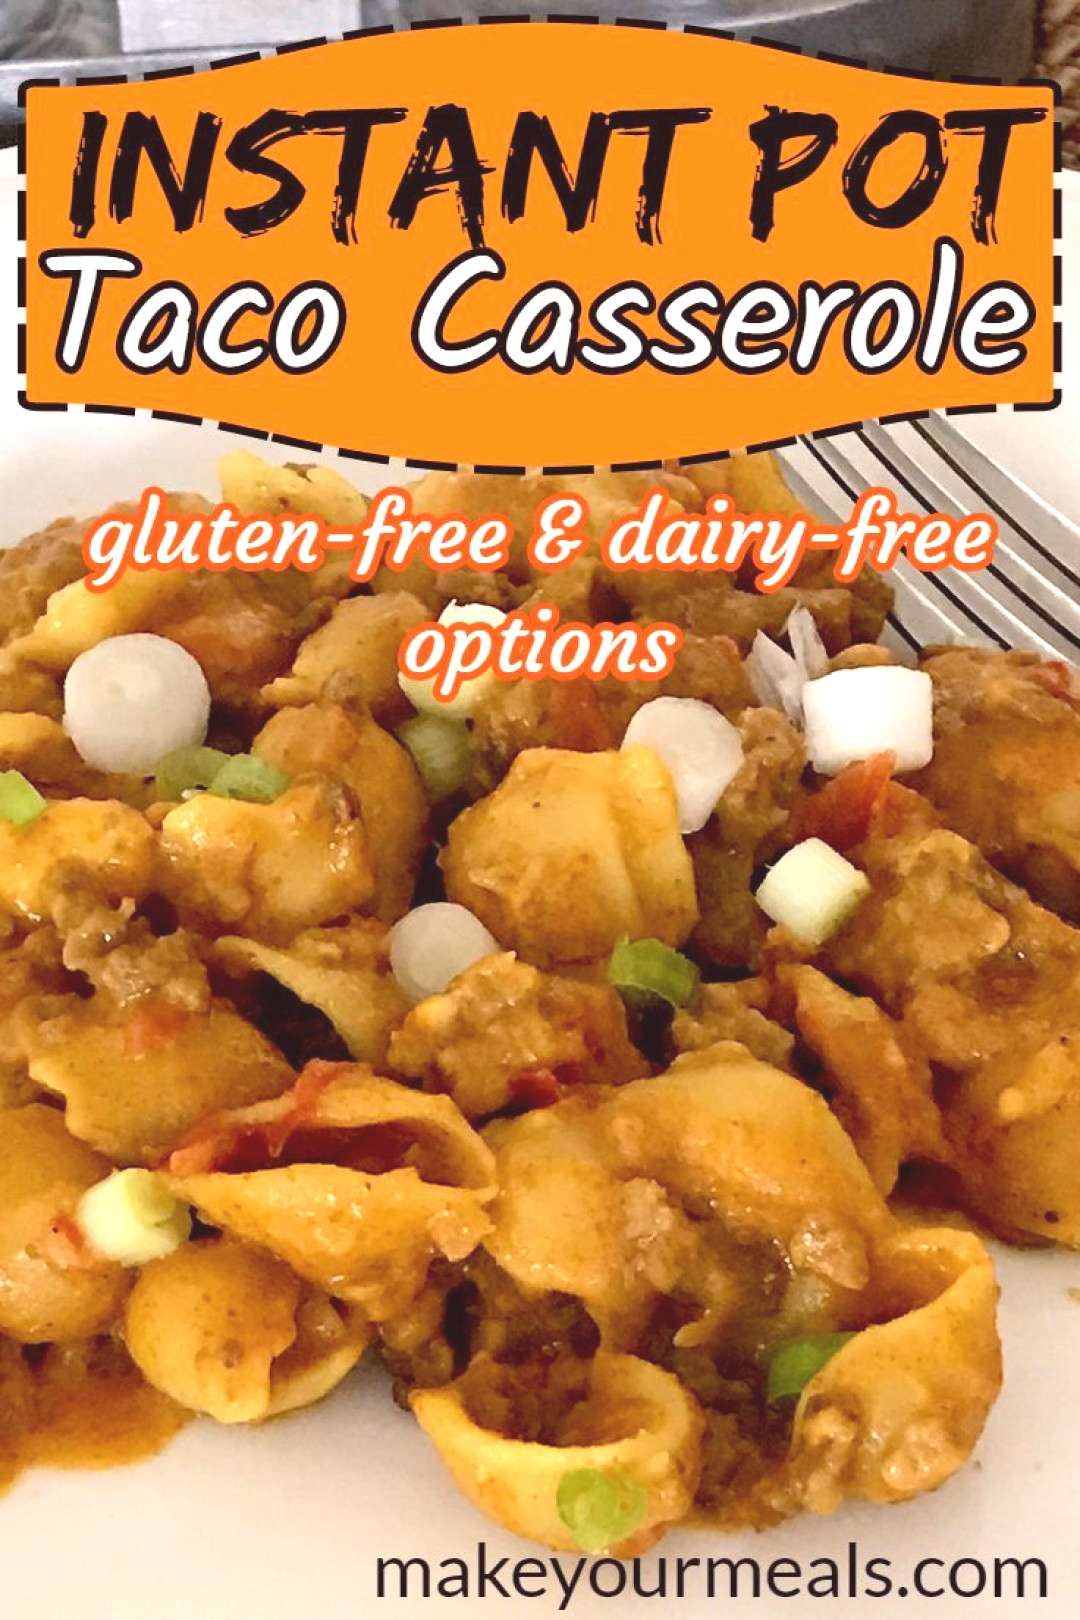 Instant Pot Taco Casserole Instant Pot Taco Casserole - made in minutes. Plus gluten-free and dairy